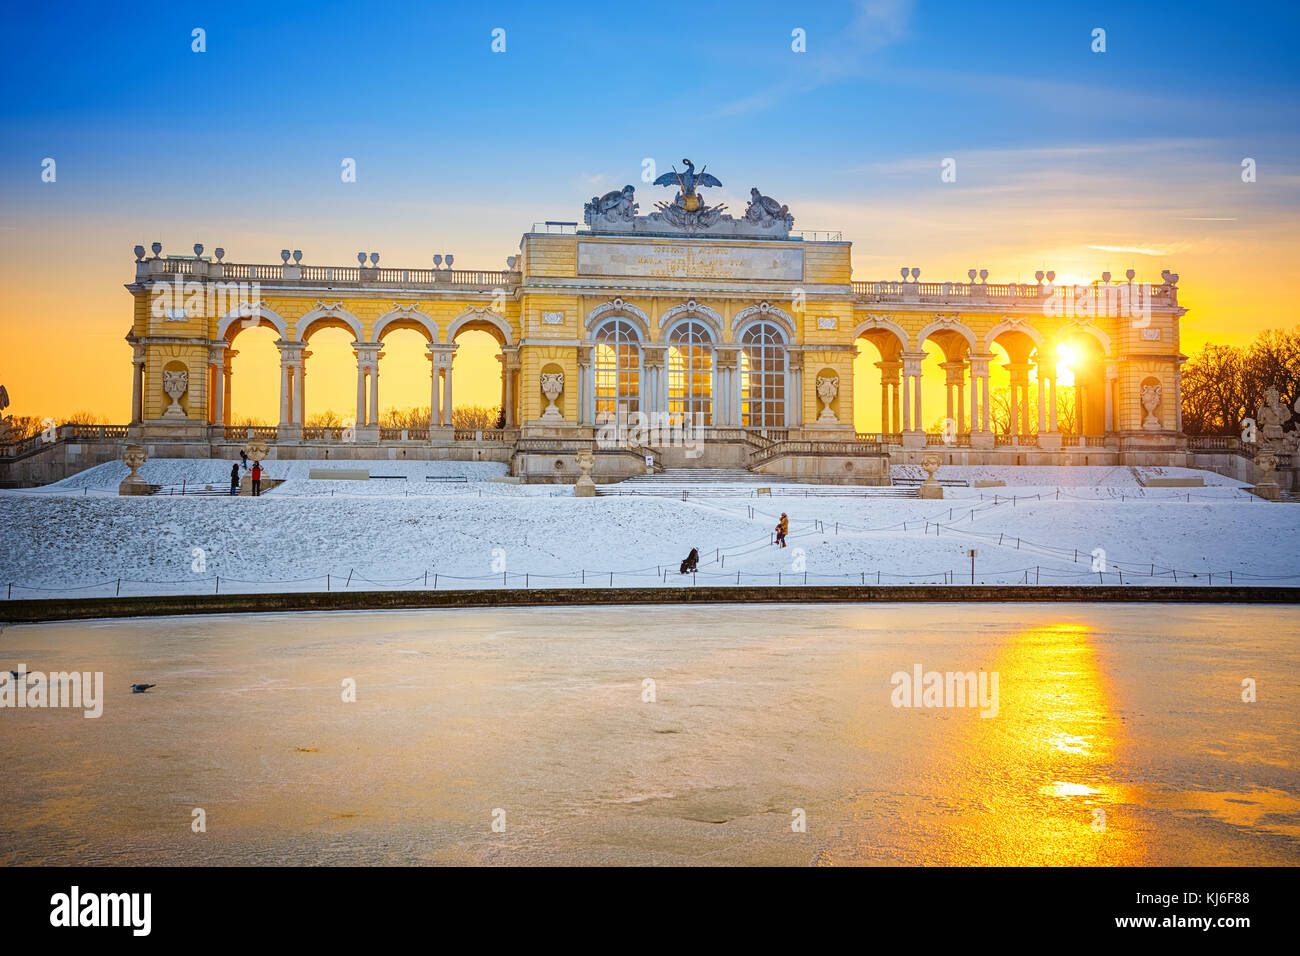 Gloriette in Schonbrunn Palace at winter, Vienna, Austria - Stock Image